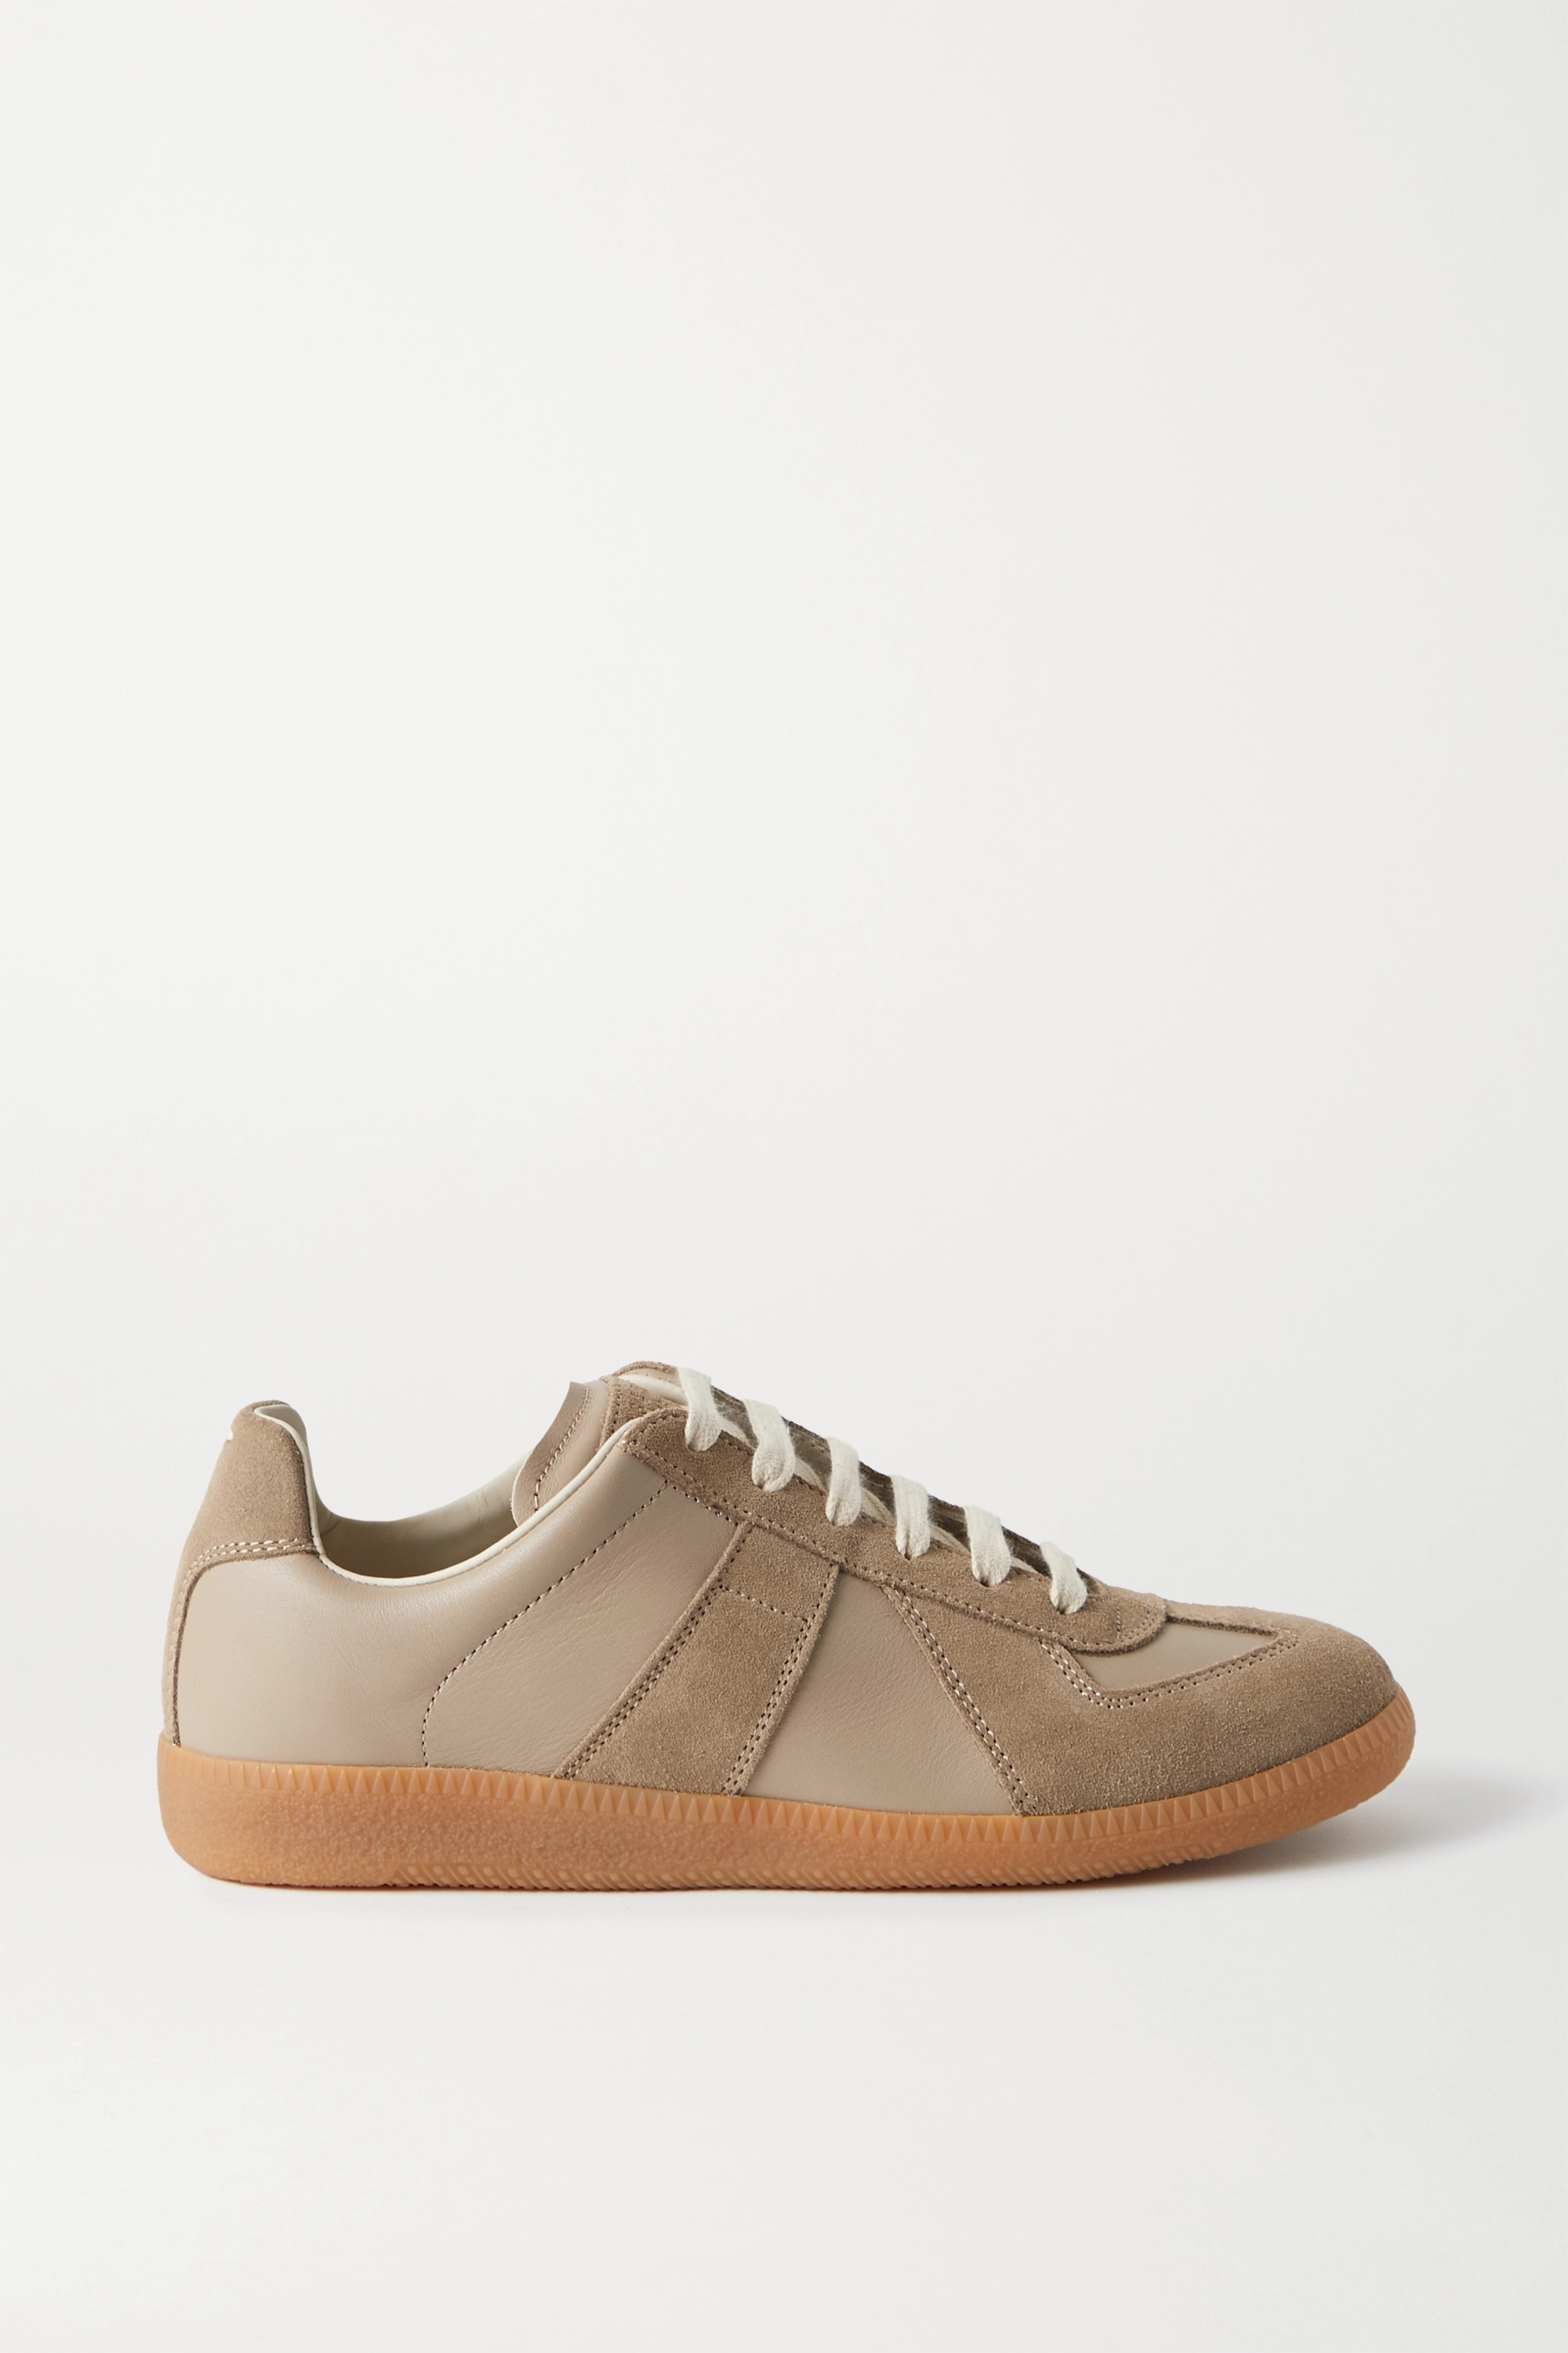 Maison Margiela Replica leather and suede sneakers